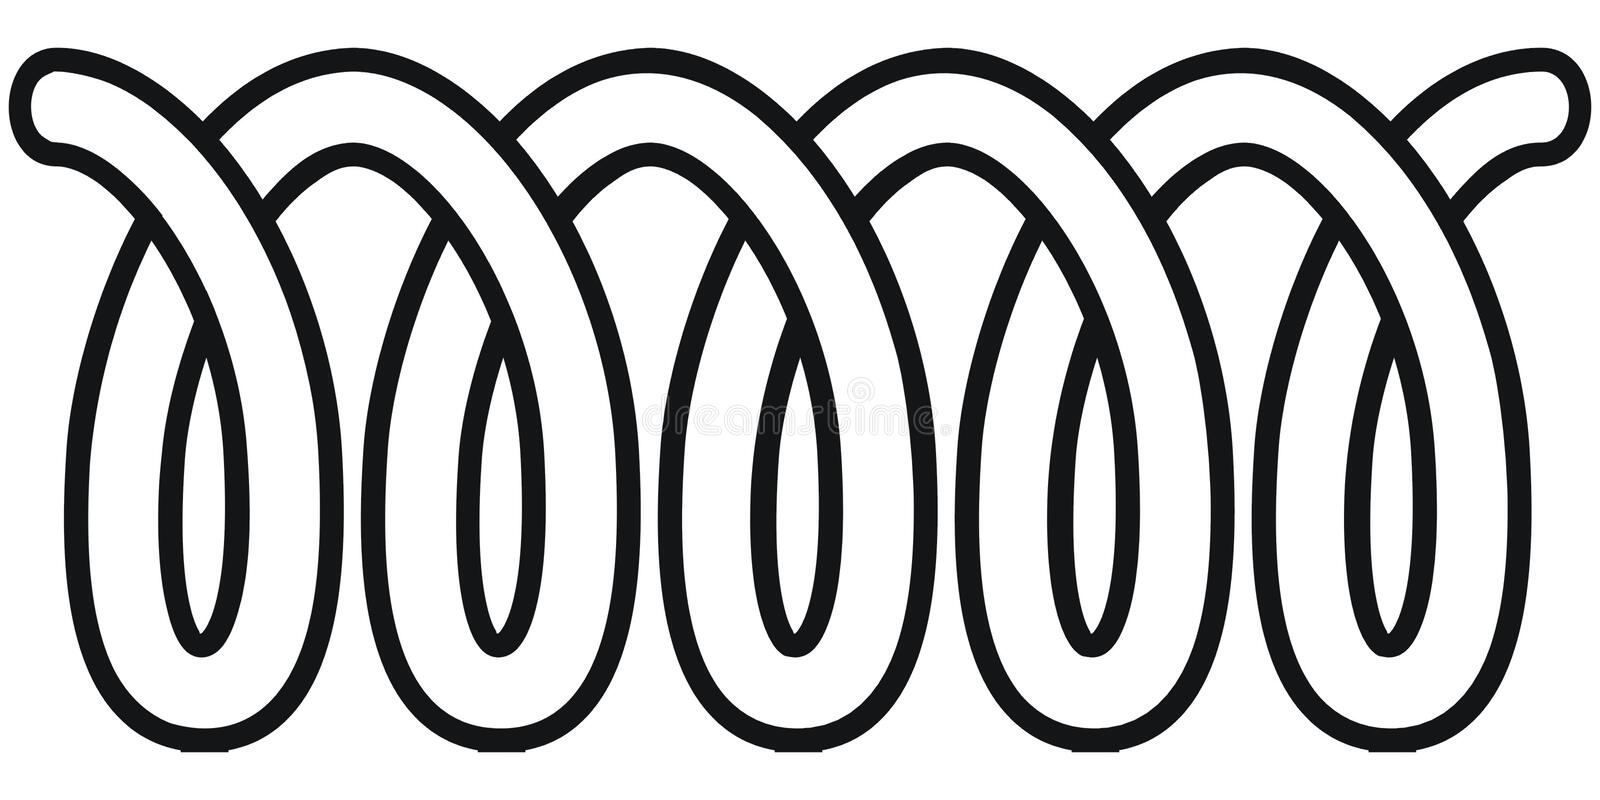 Coil. Art illustration in black and white: a coil vector illustration